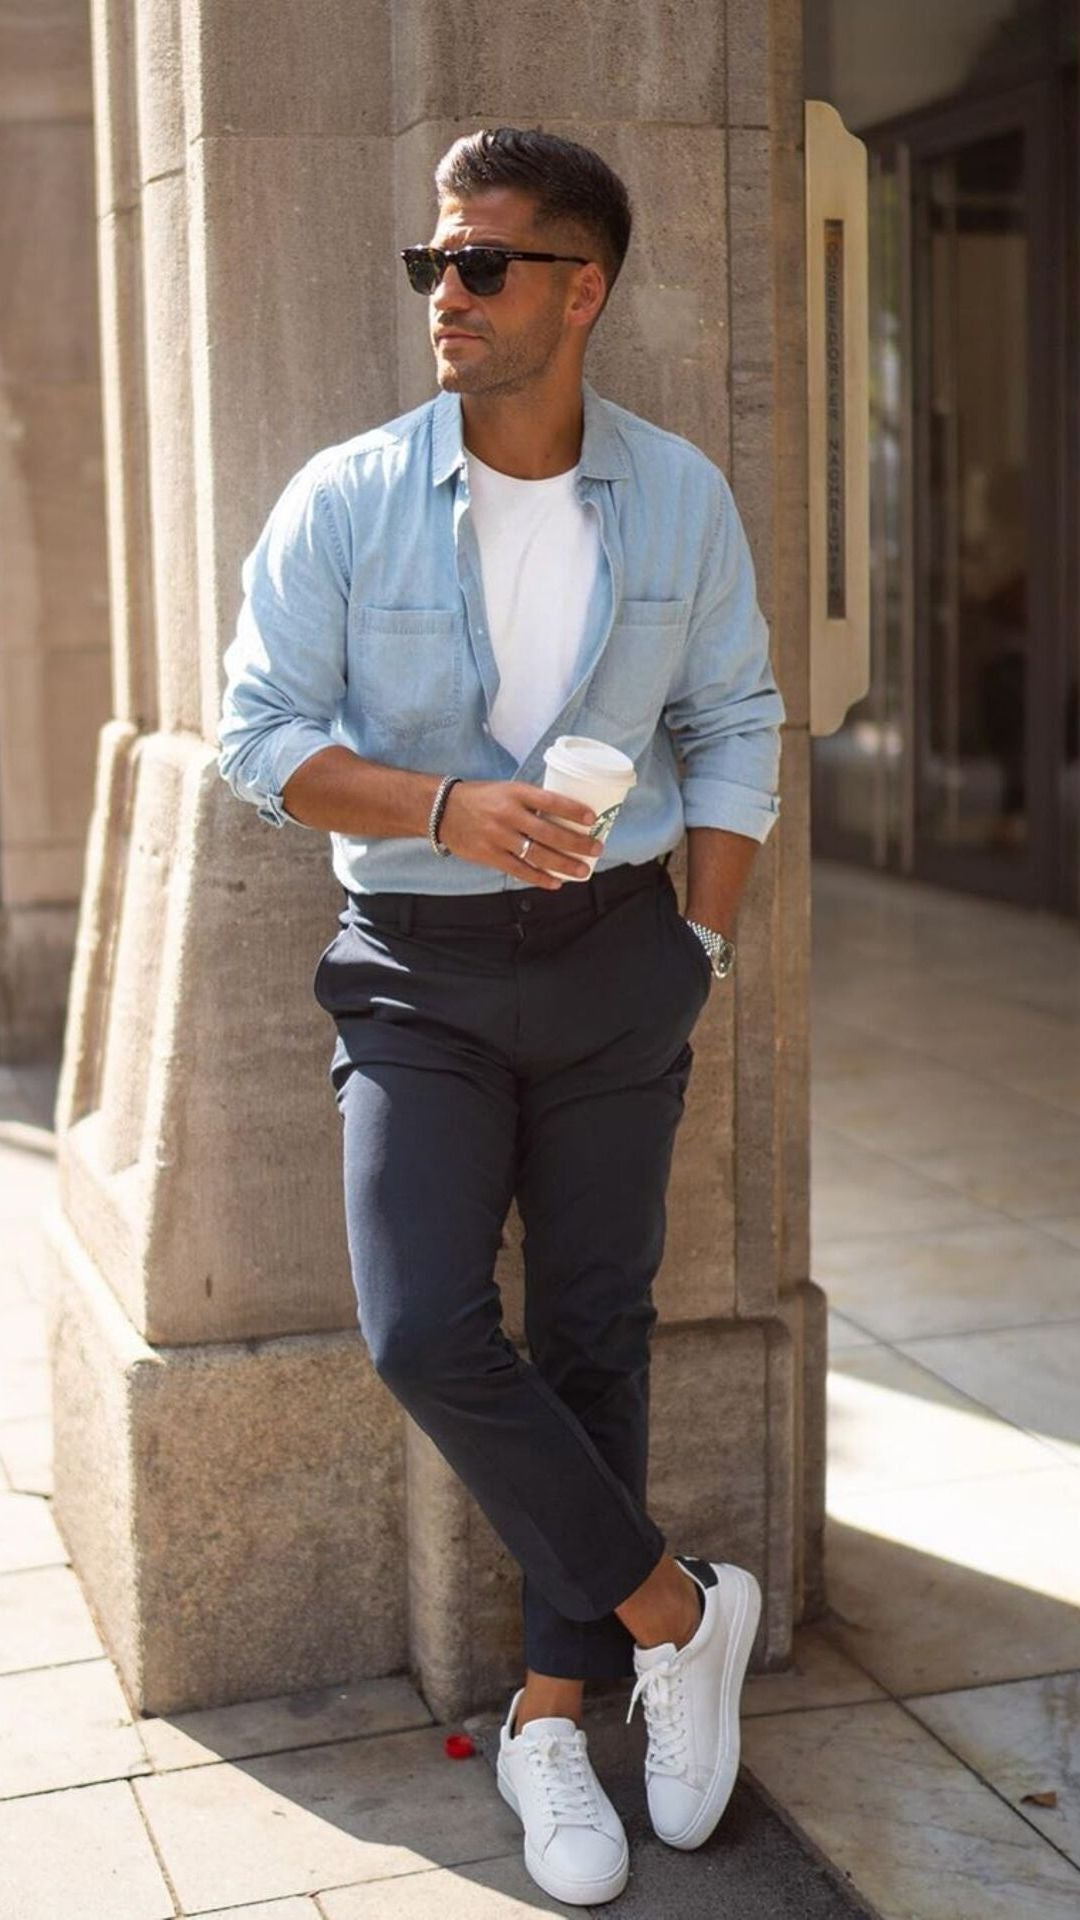 5 Casual Street Style Looks For Men #mens #fashion #street #style